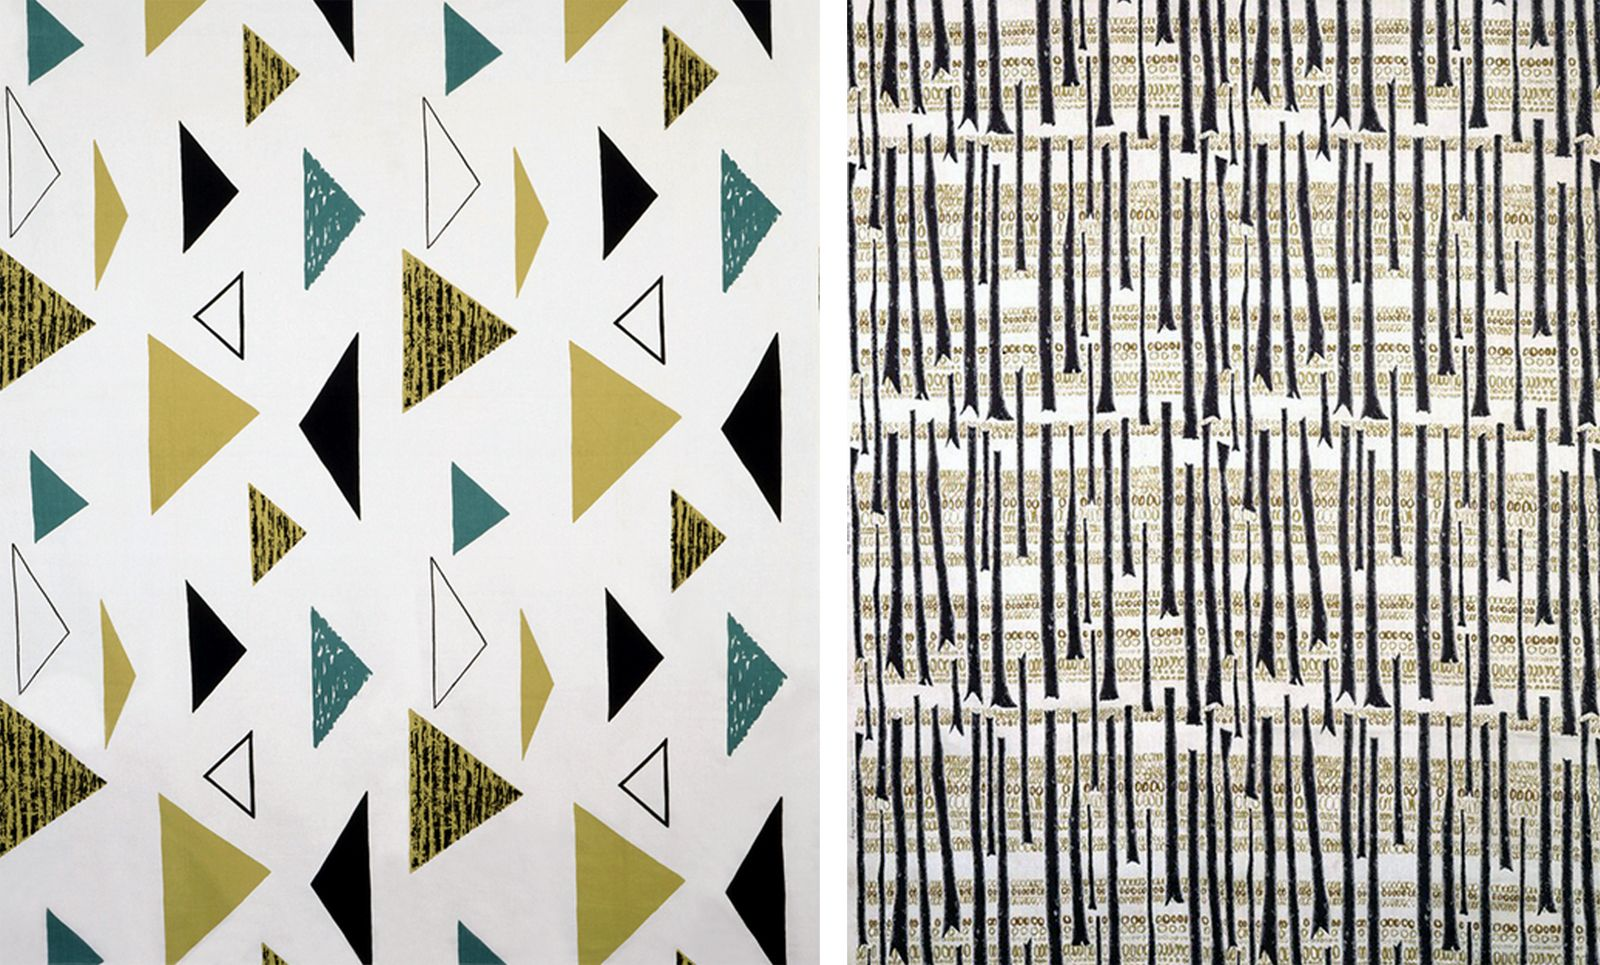 Klt sketchbook fabric friday lucienne day us